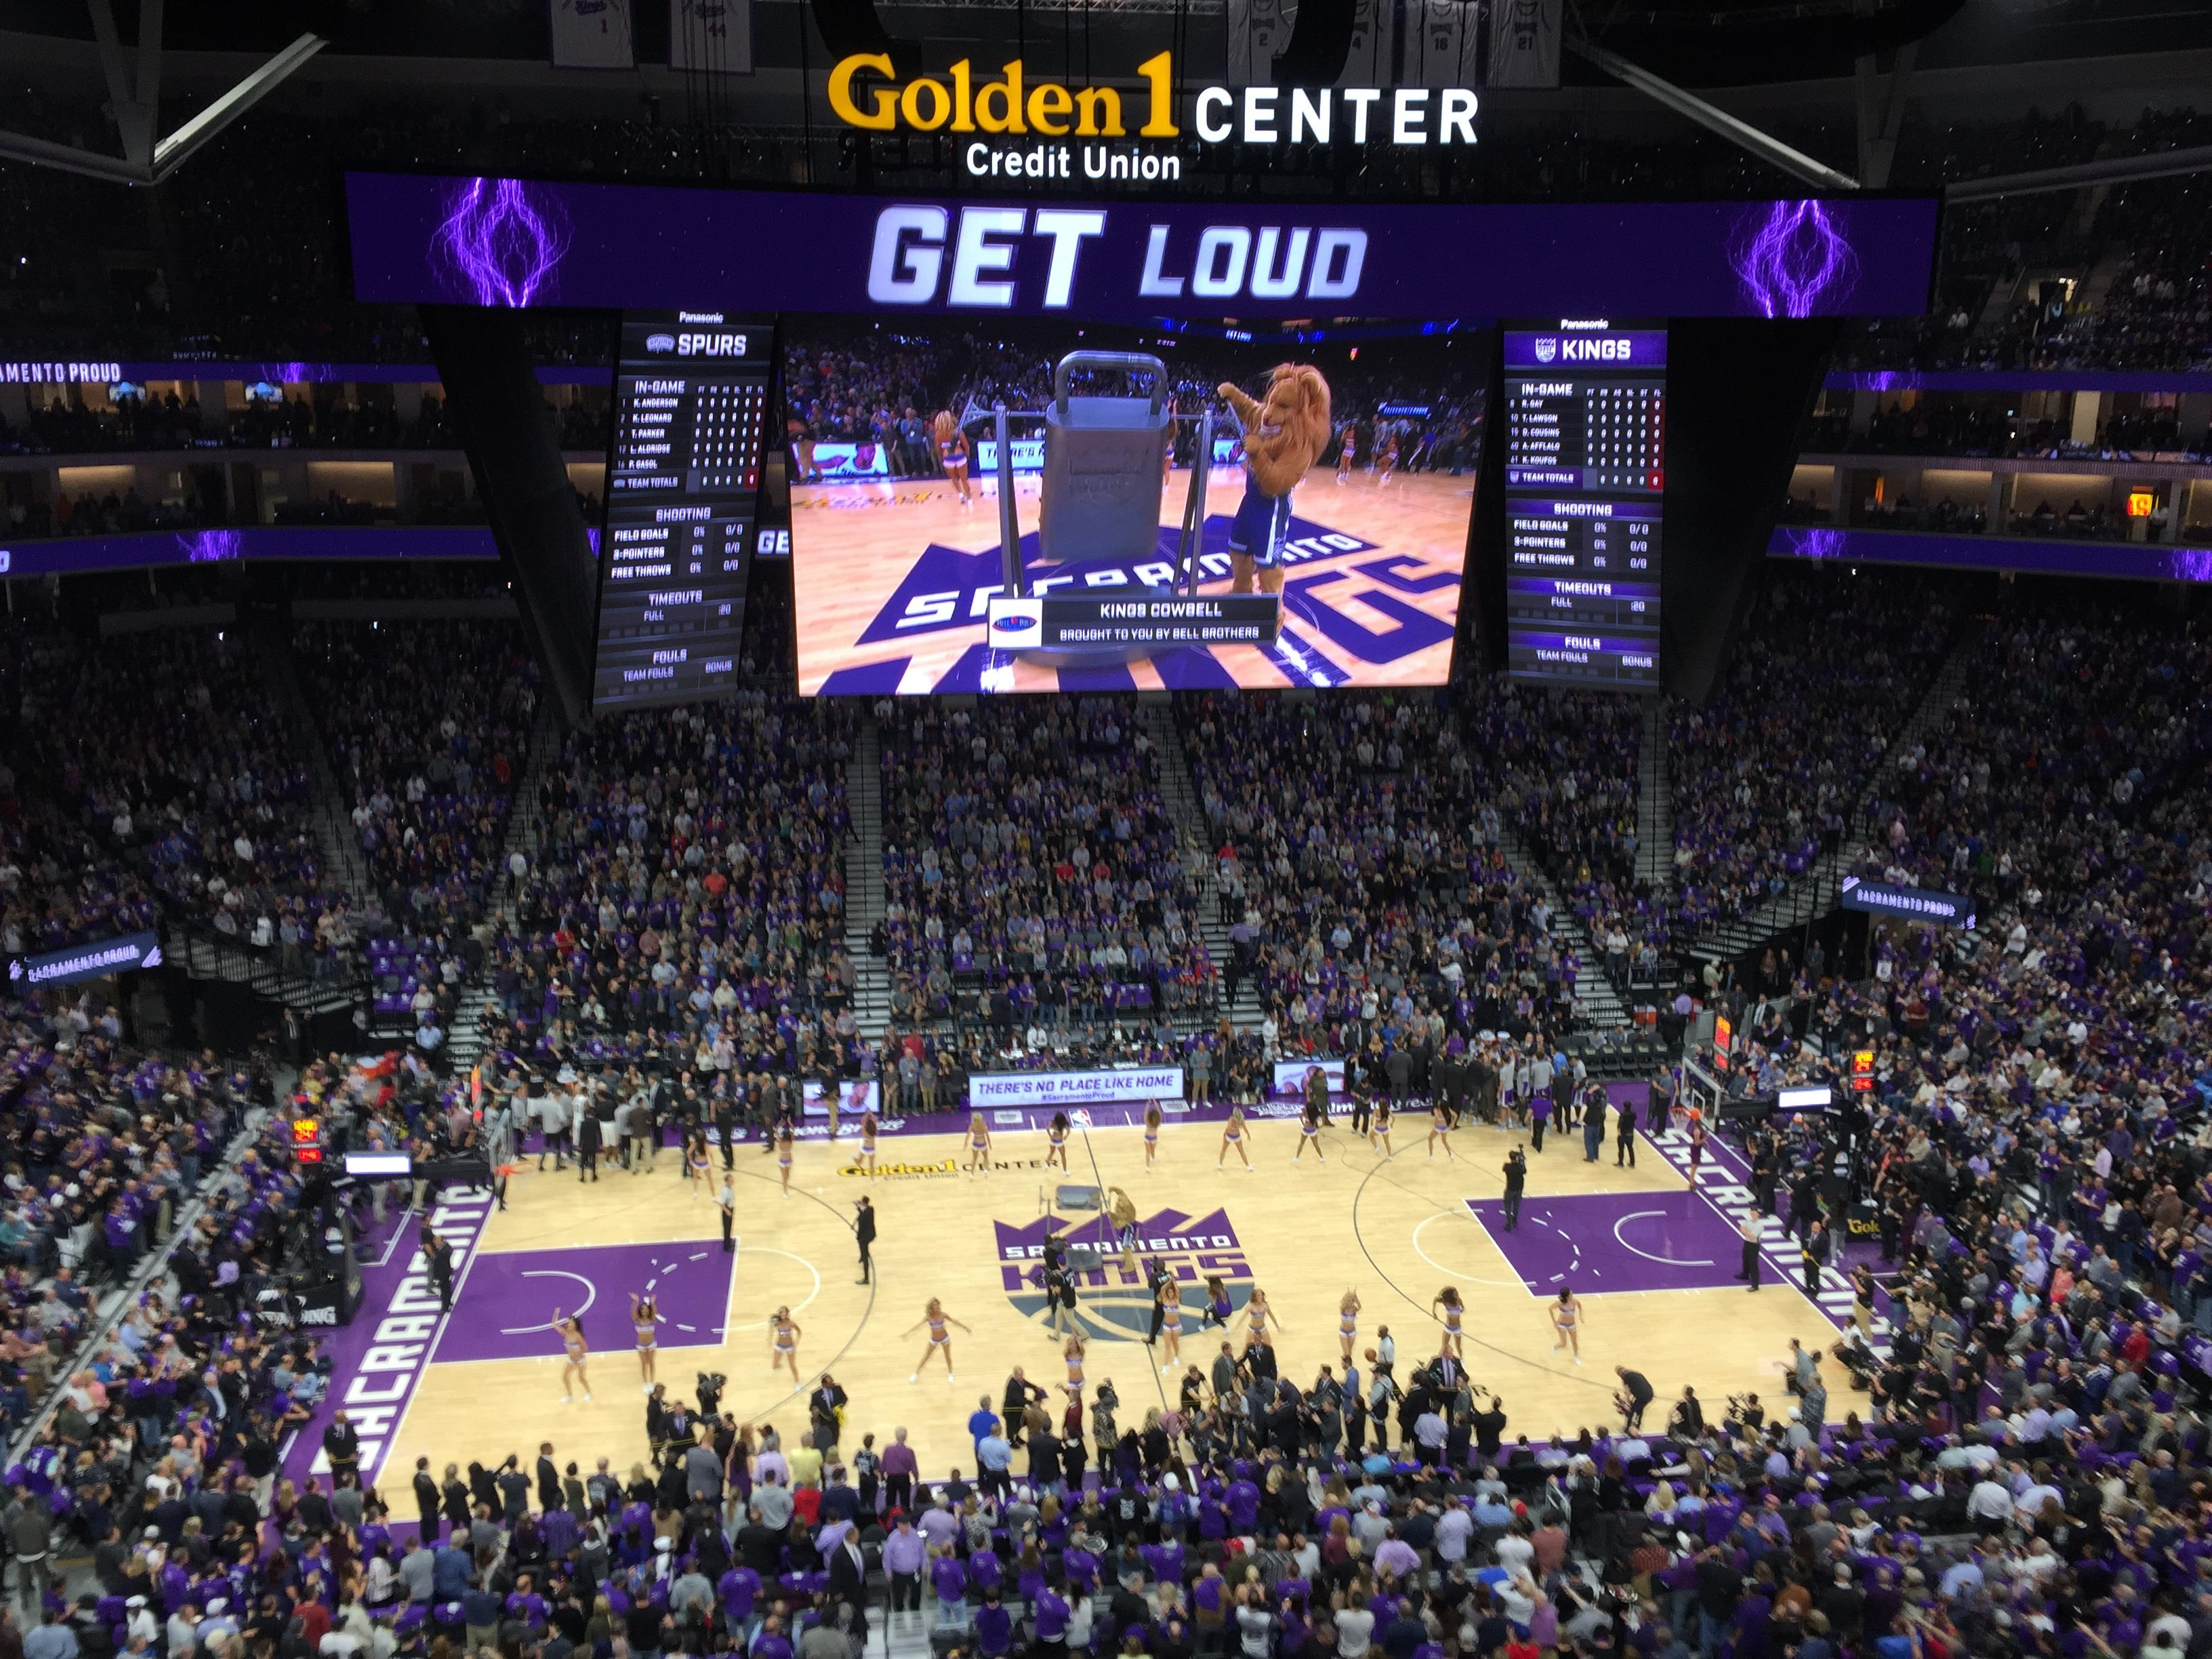 Golden 1 Center Section 218 Row A Seat 23-24